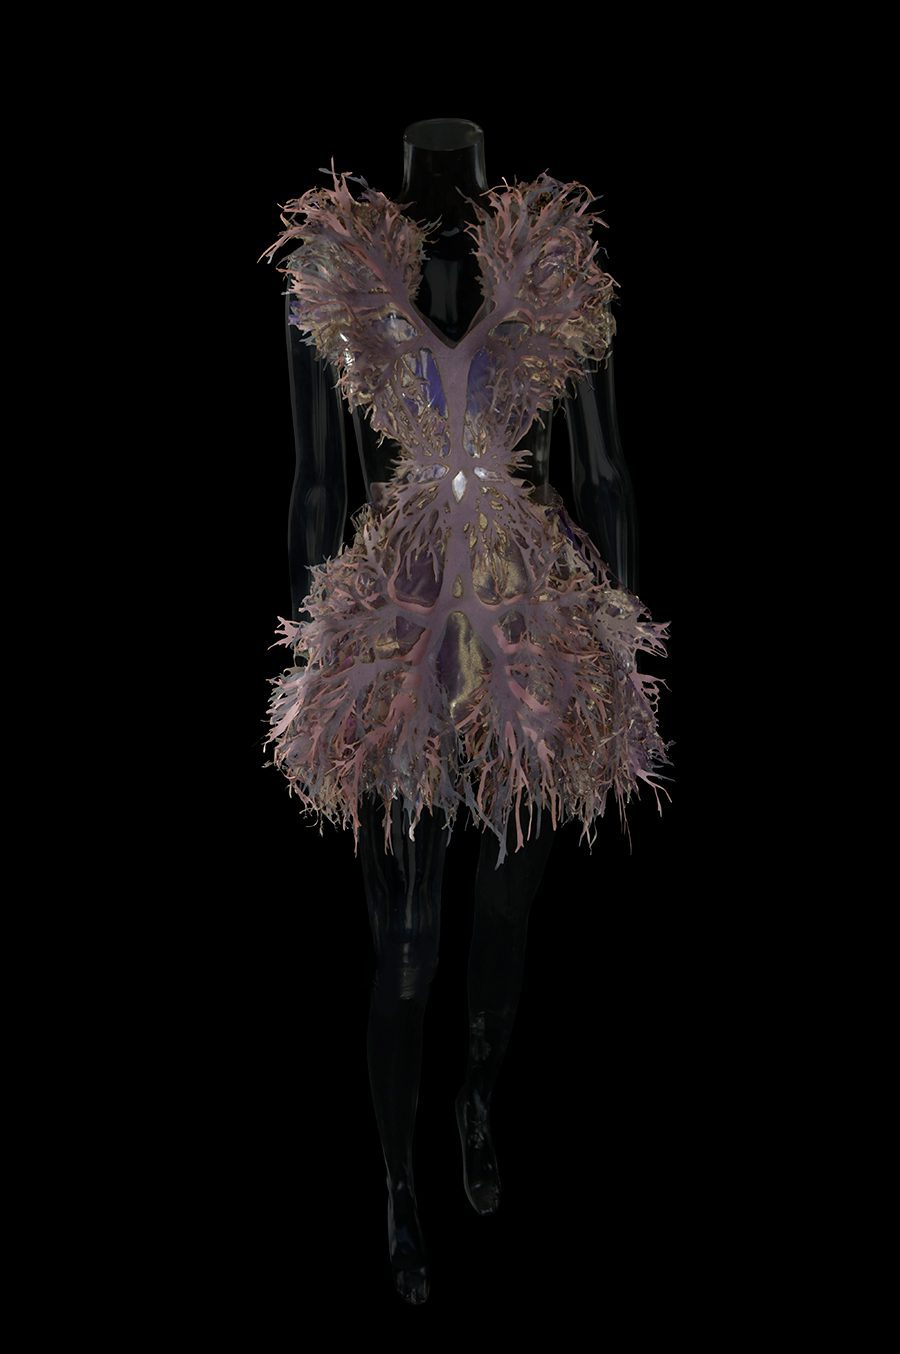 2017-Amy-Karle-Internal-Collection-Second-Chance-dress-based-on-lungs-02